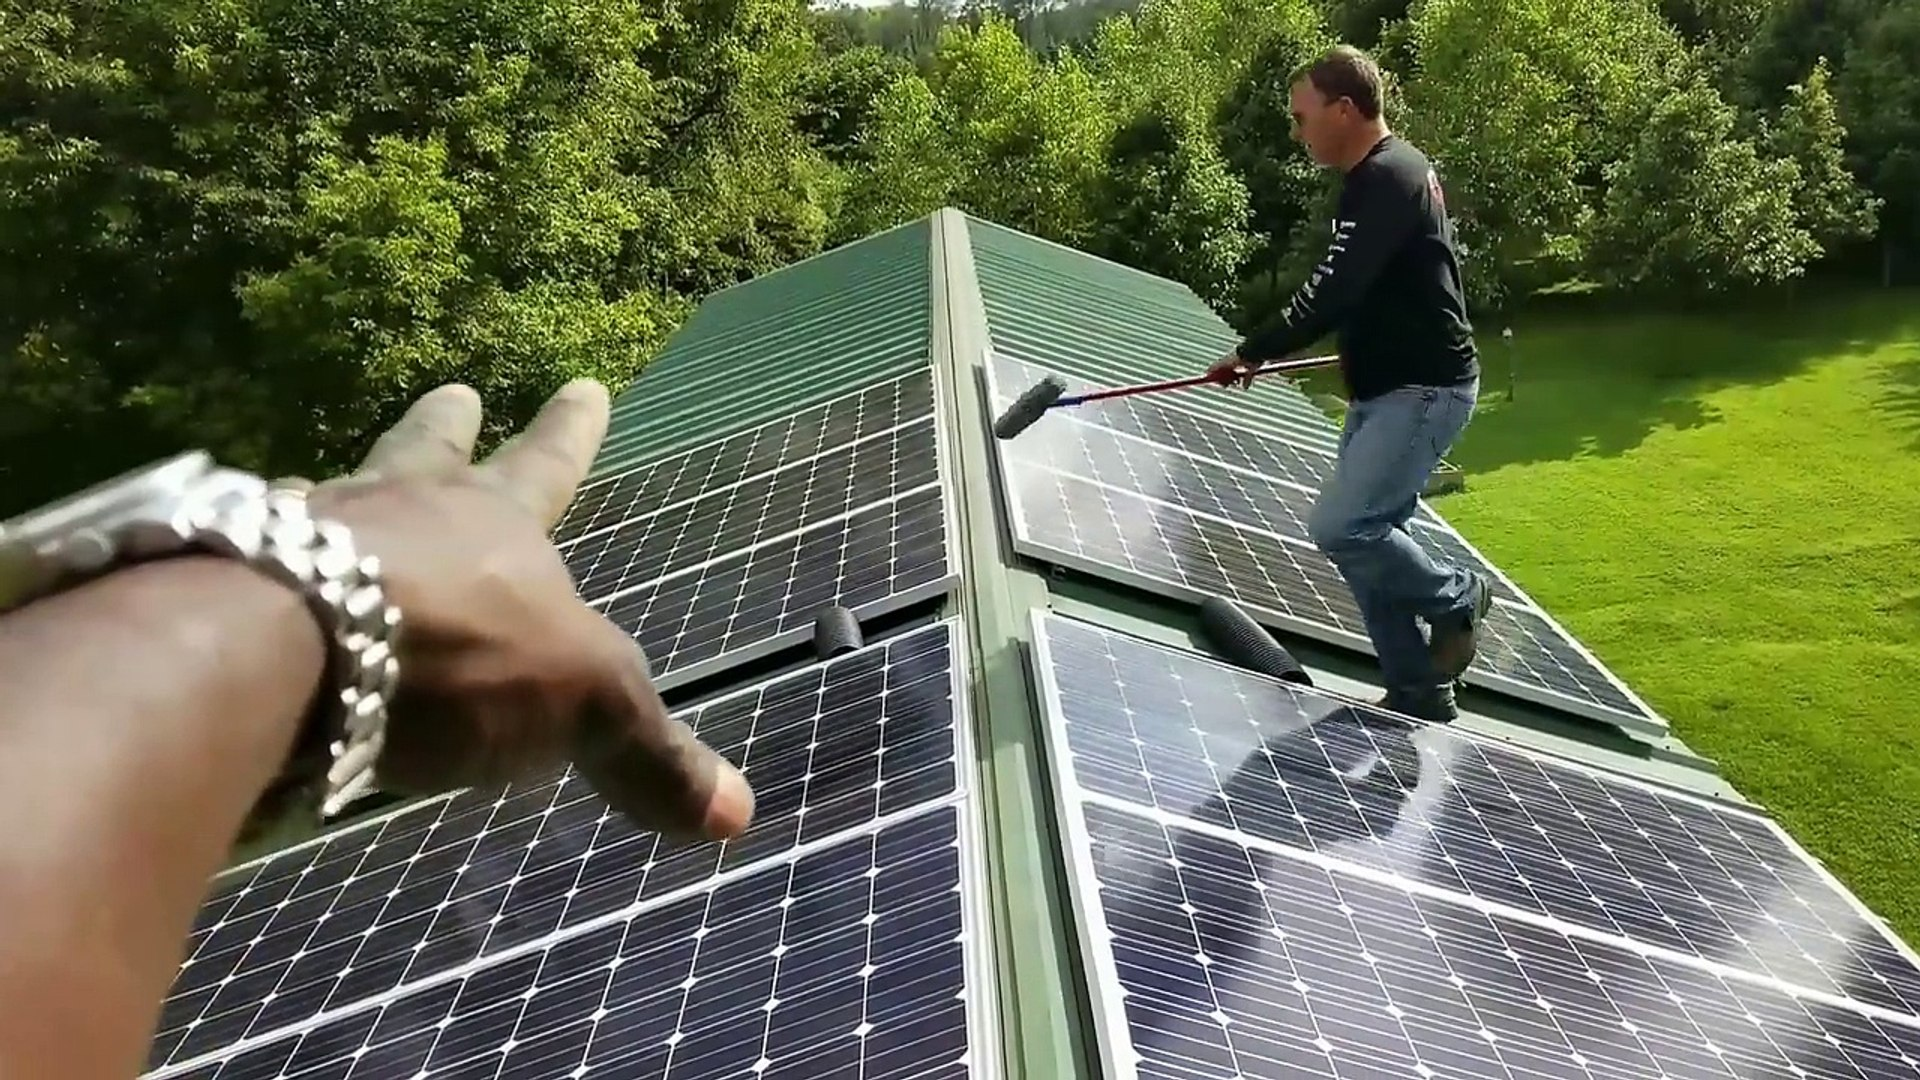 HOW TO RUNS YOUR HOME SOLAR SYSTEM WITHOUT BATTERIES - Annual Solar Power Production